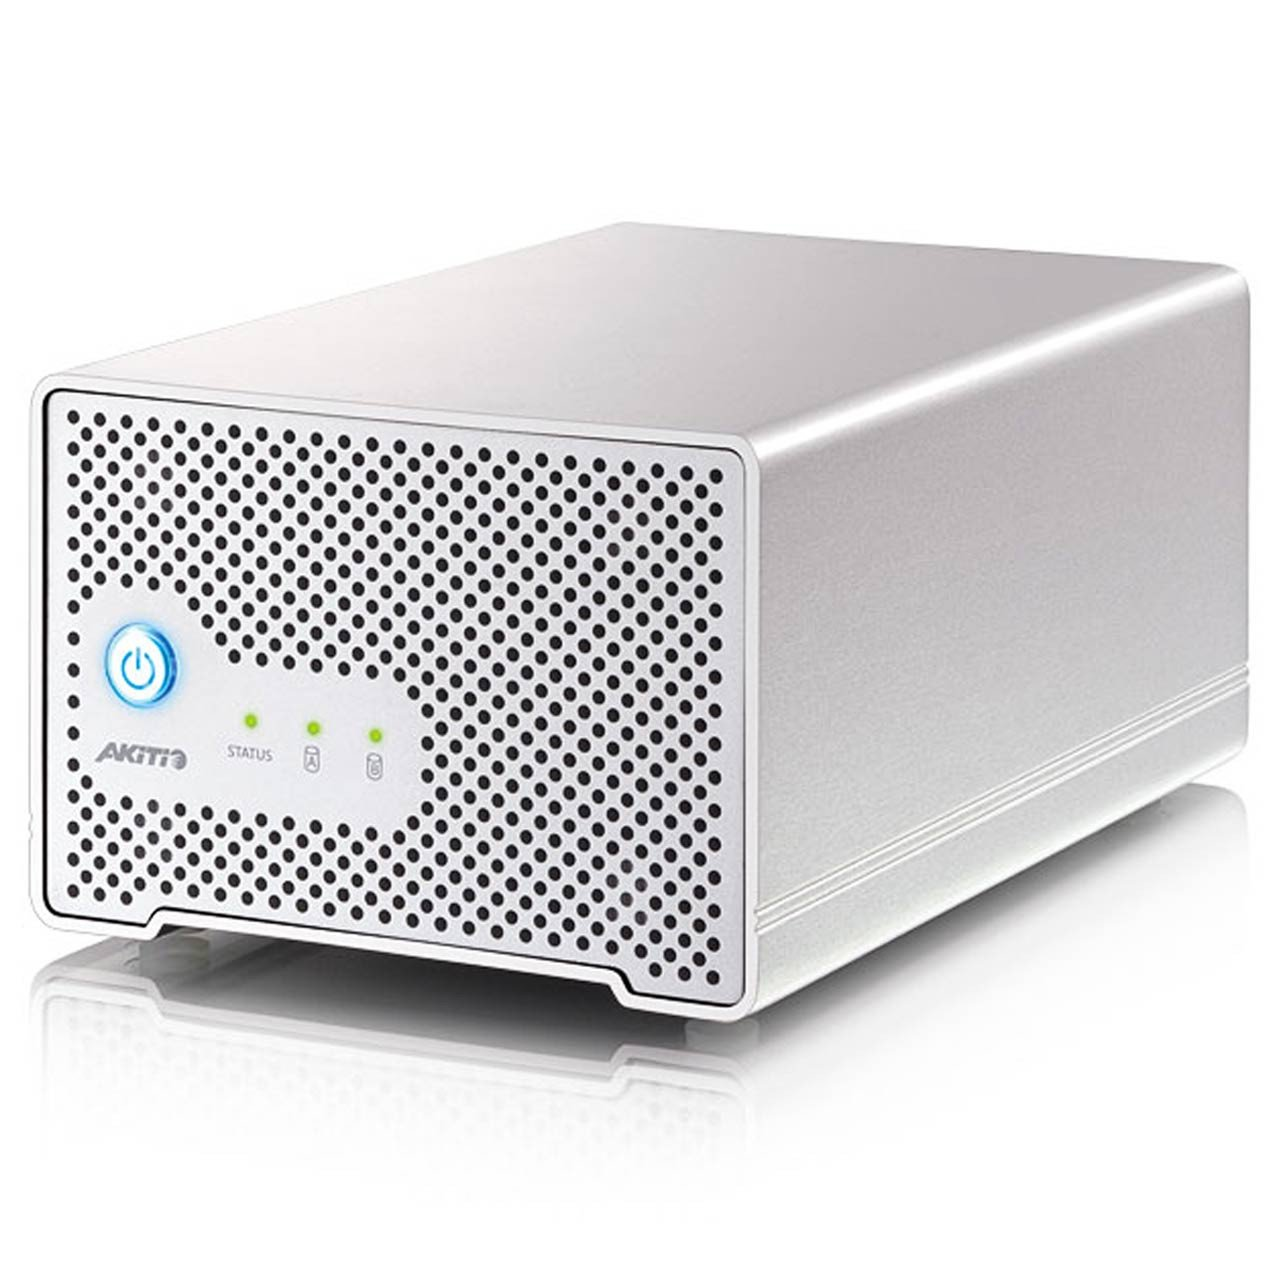 "External Hard Drives - Akitio Neutrino Thunder Duo 2.5"" Dual Bay Thunderbolt Drive"